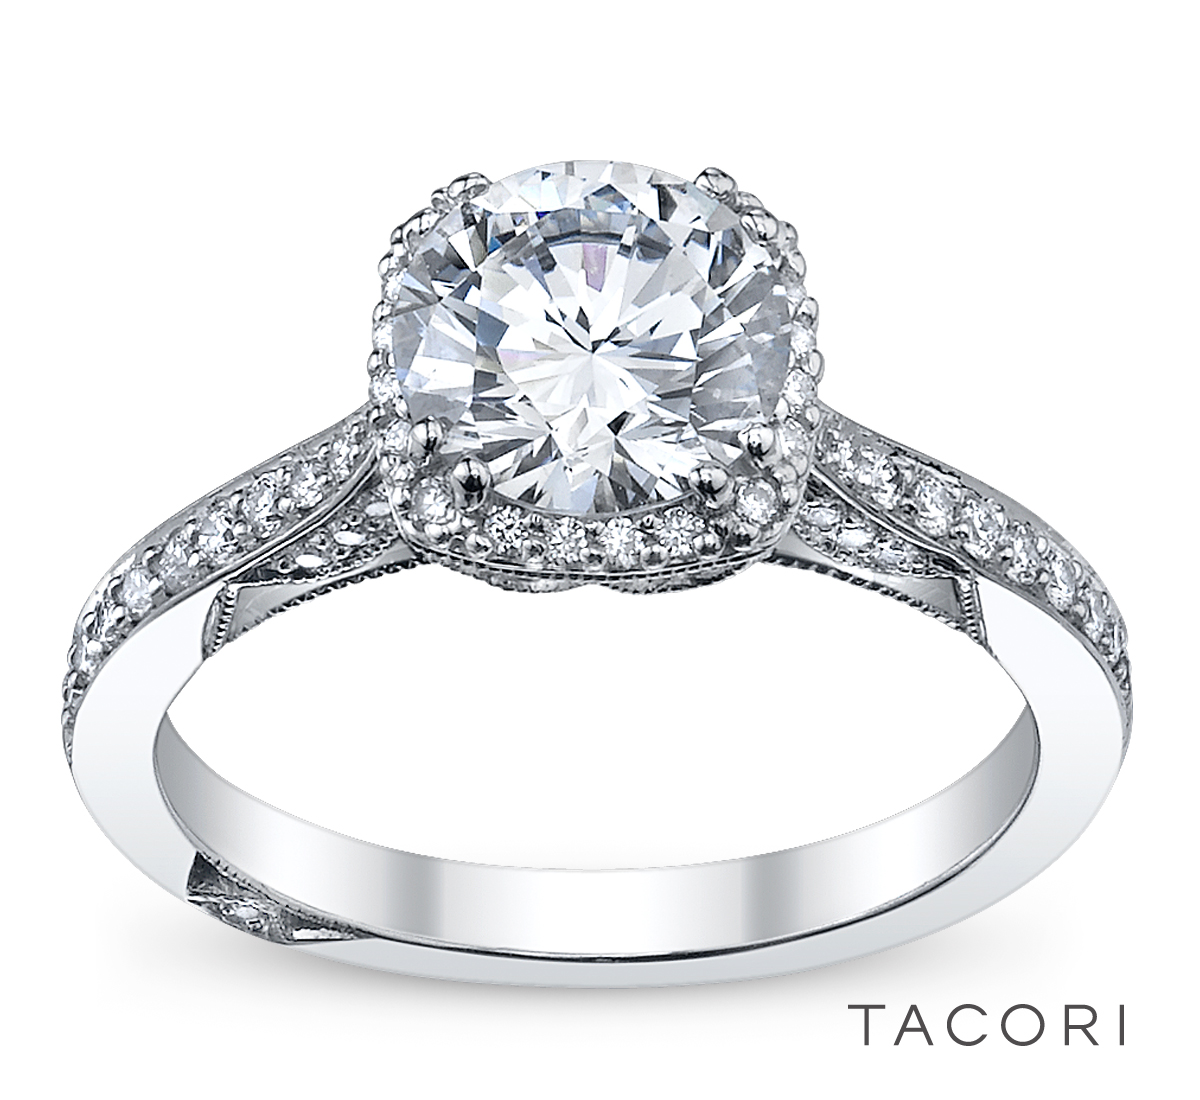 Tacori | Robbins Brothers Engagement Rings, Proposals ...